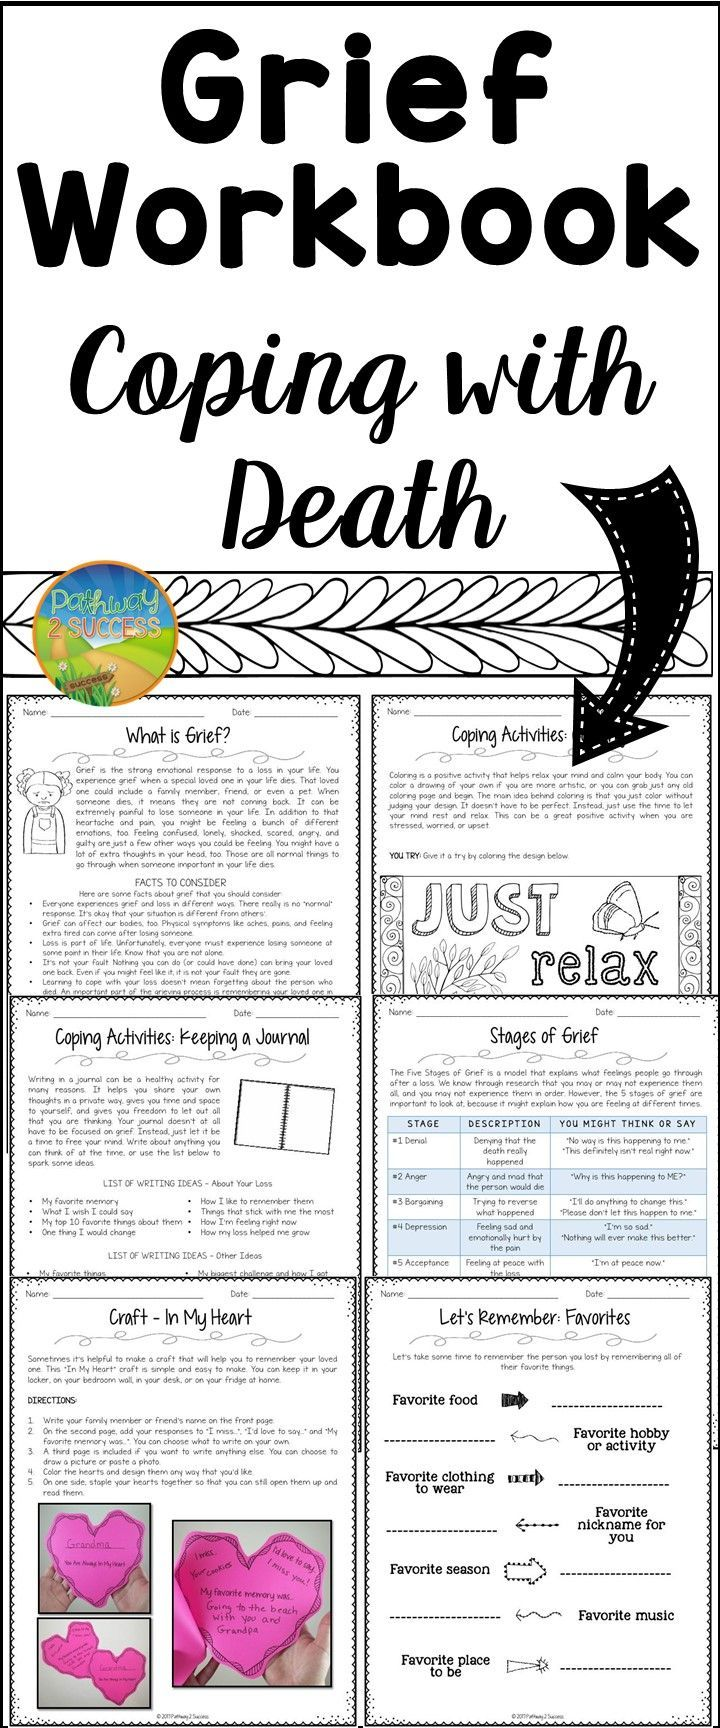 Worksheets Grief Worksheet grief workbook for coping with death and counselling death